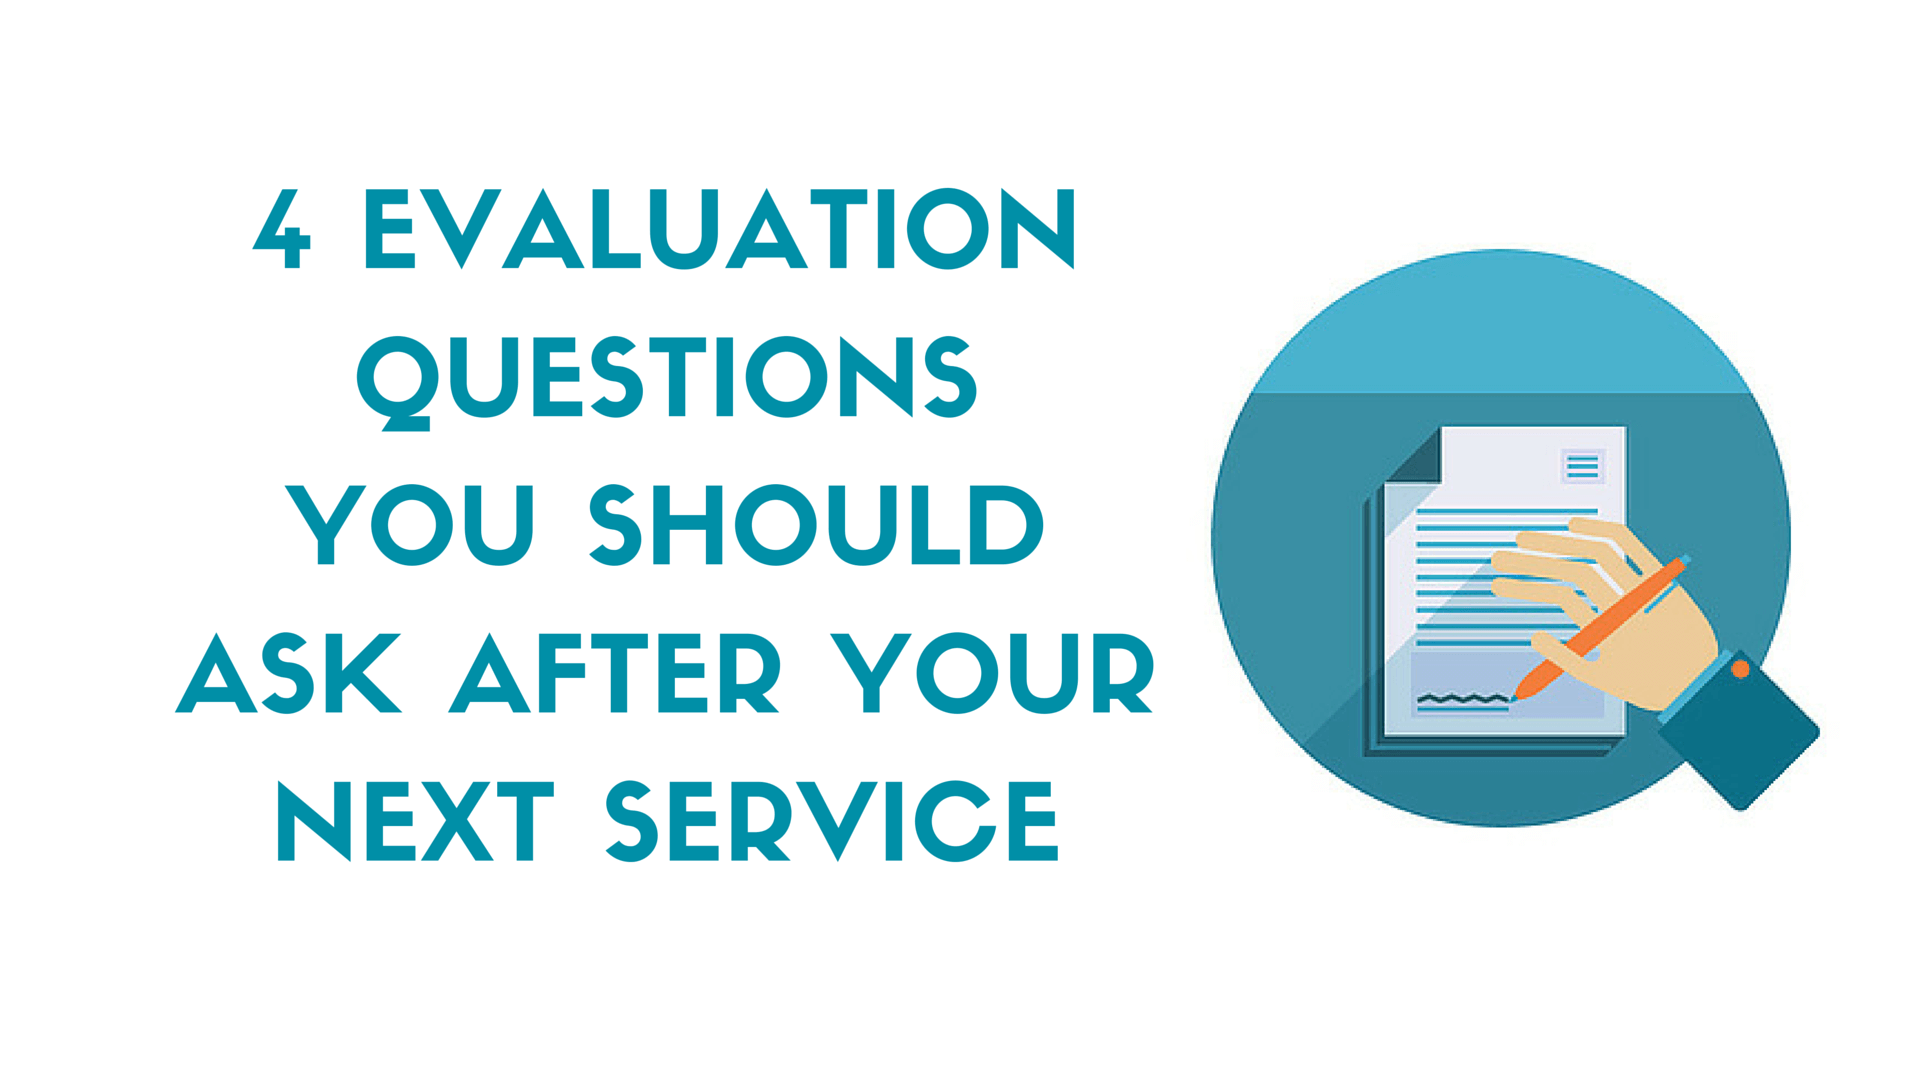 4 Evaluation Questions You Should Ask After Your Next Service